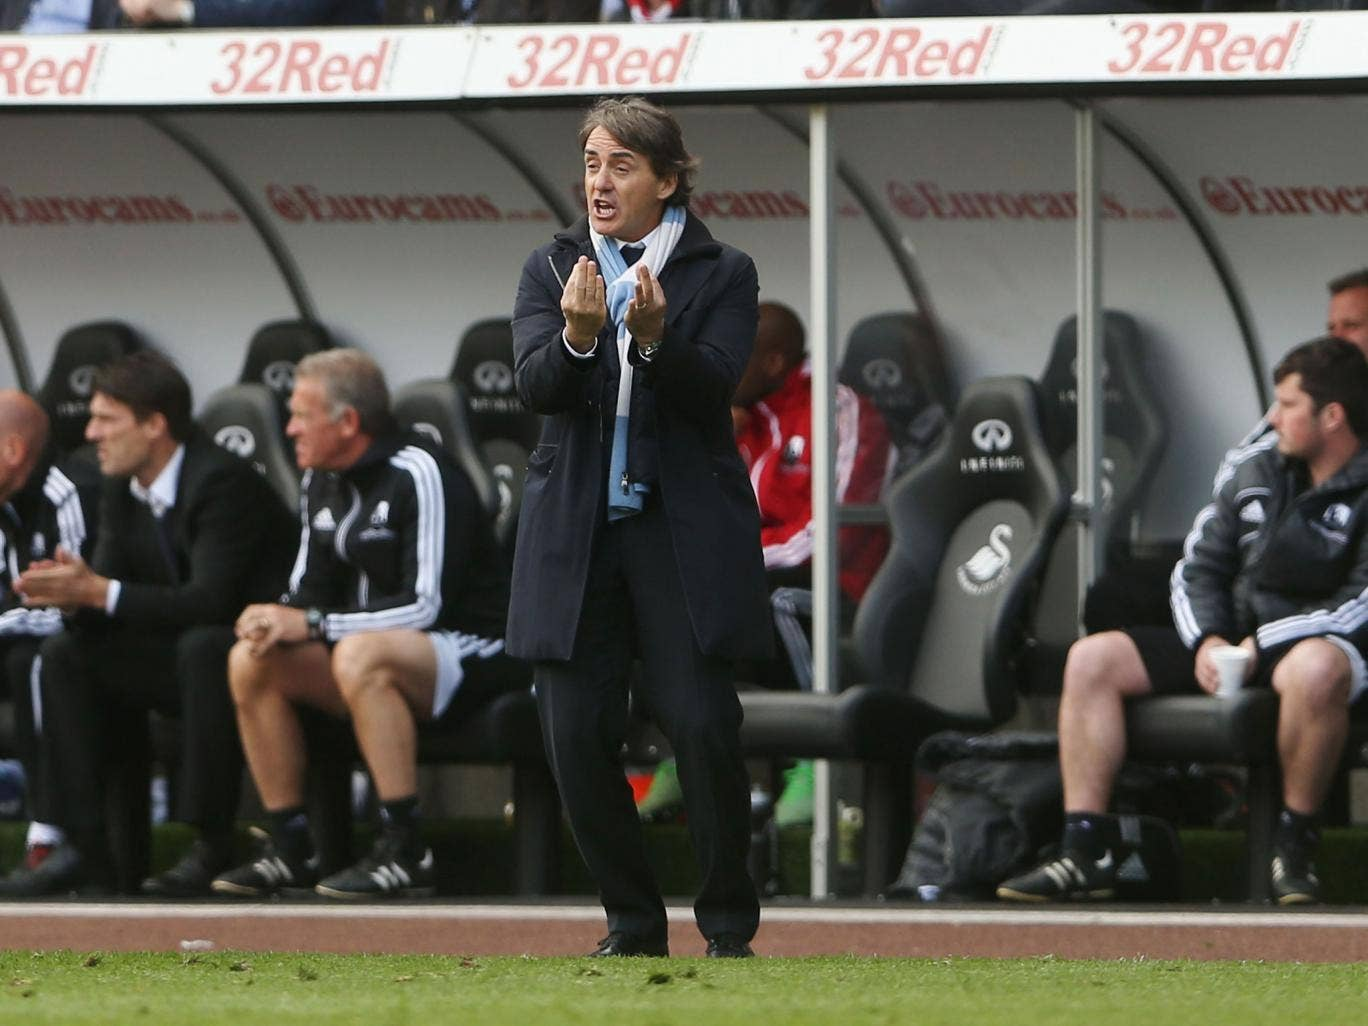 Roberto Mancini's disappointing season continues with a draw against Swansea